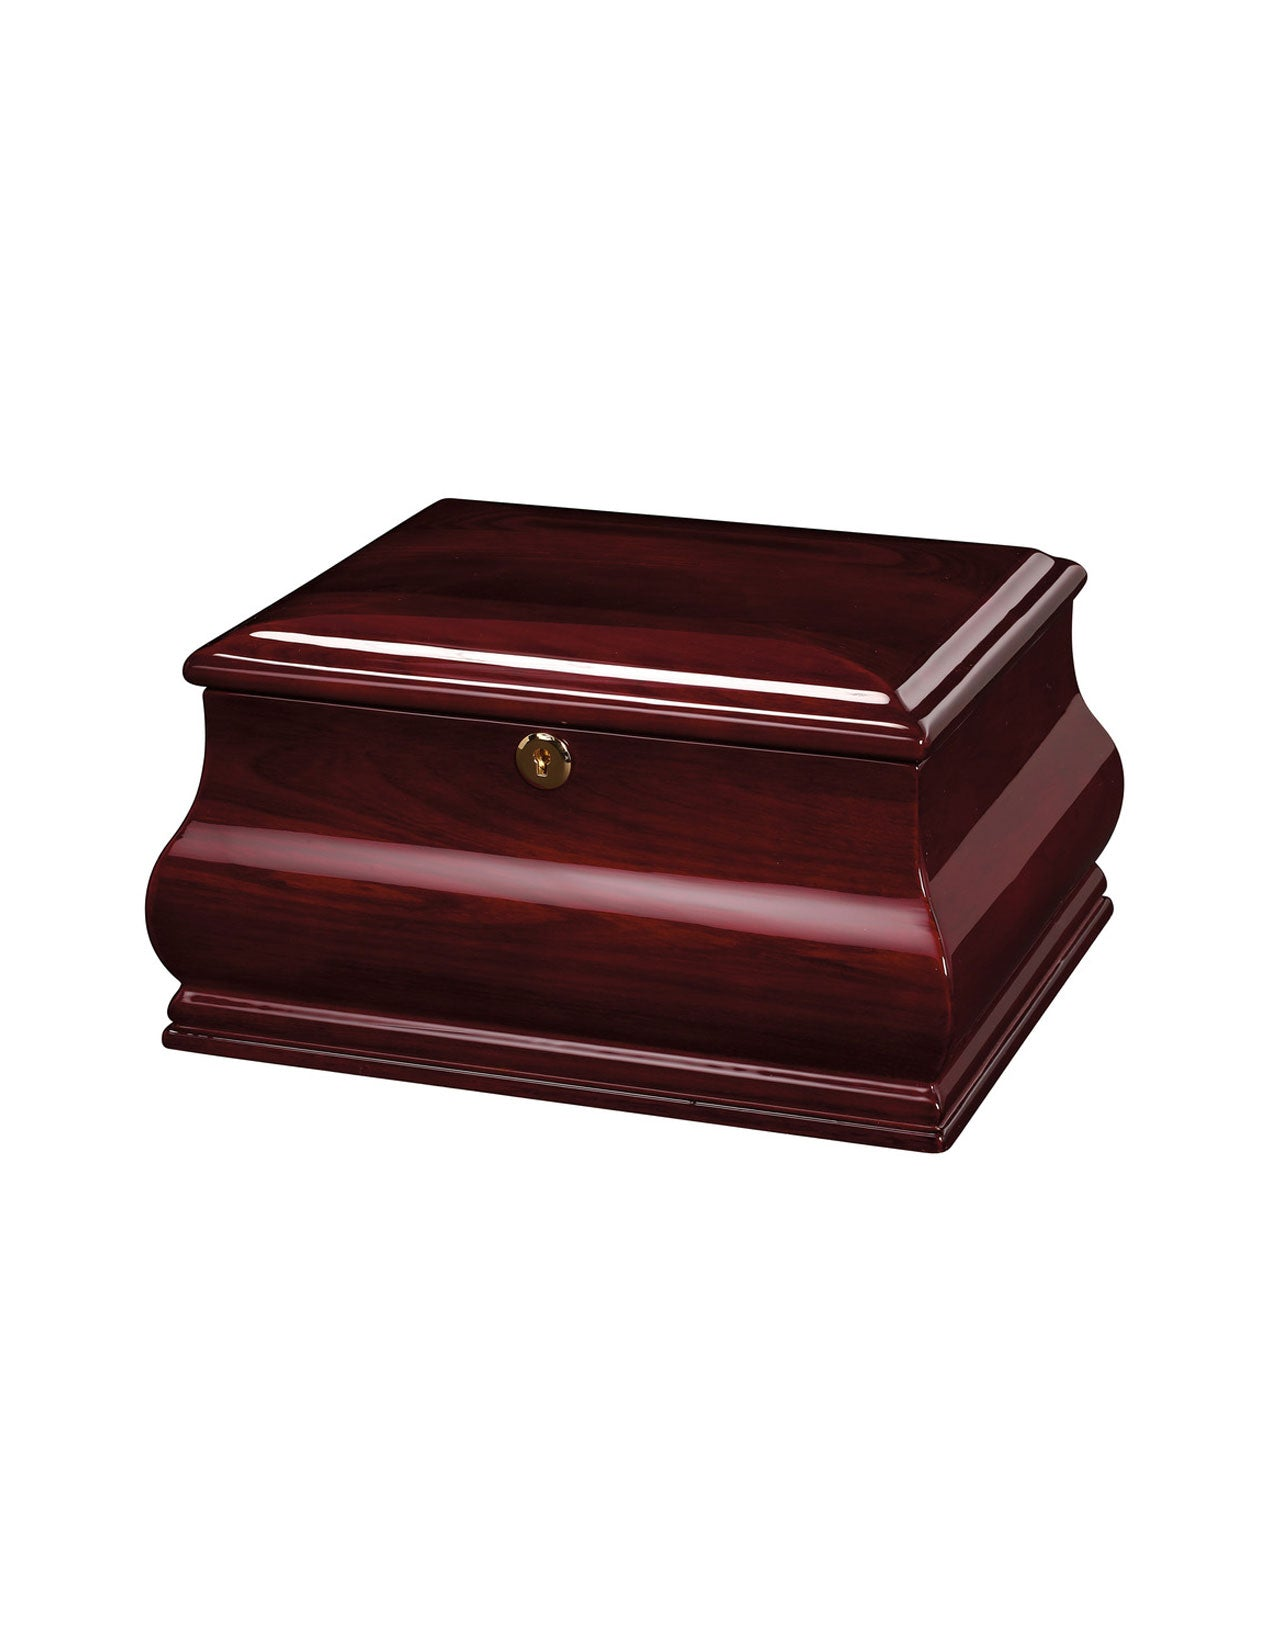 Bombay Chest Urn